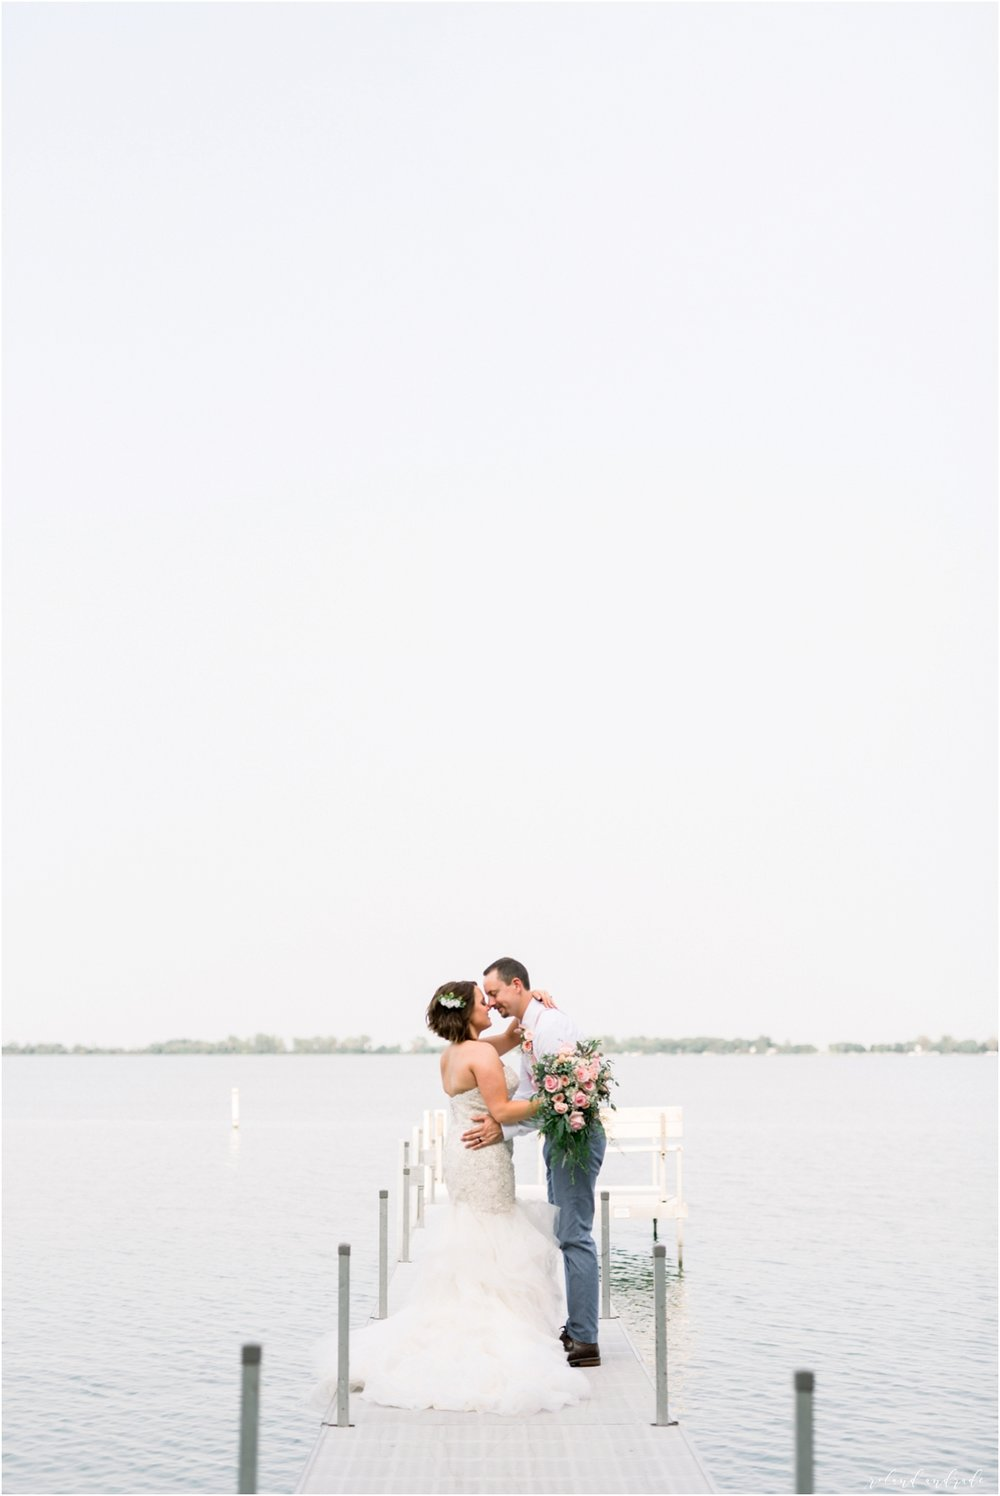 Round Lake Vineyards Wedding, Chicago Wedding Photographer, Aurora Wedding Photographer, Best Photographer In Aurora, Best Photographer In Chicago_0072.jpg